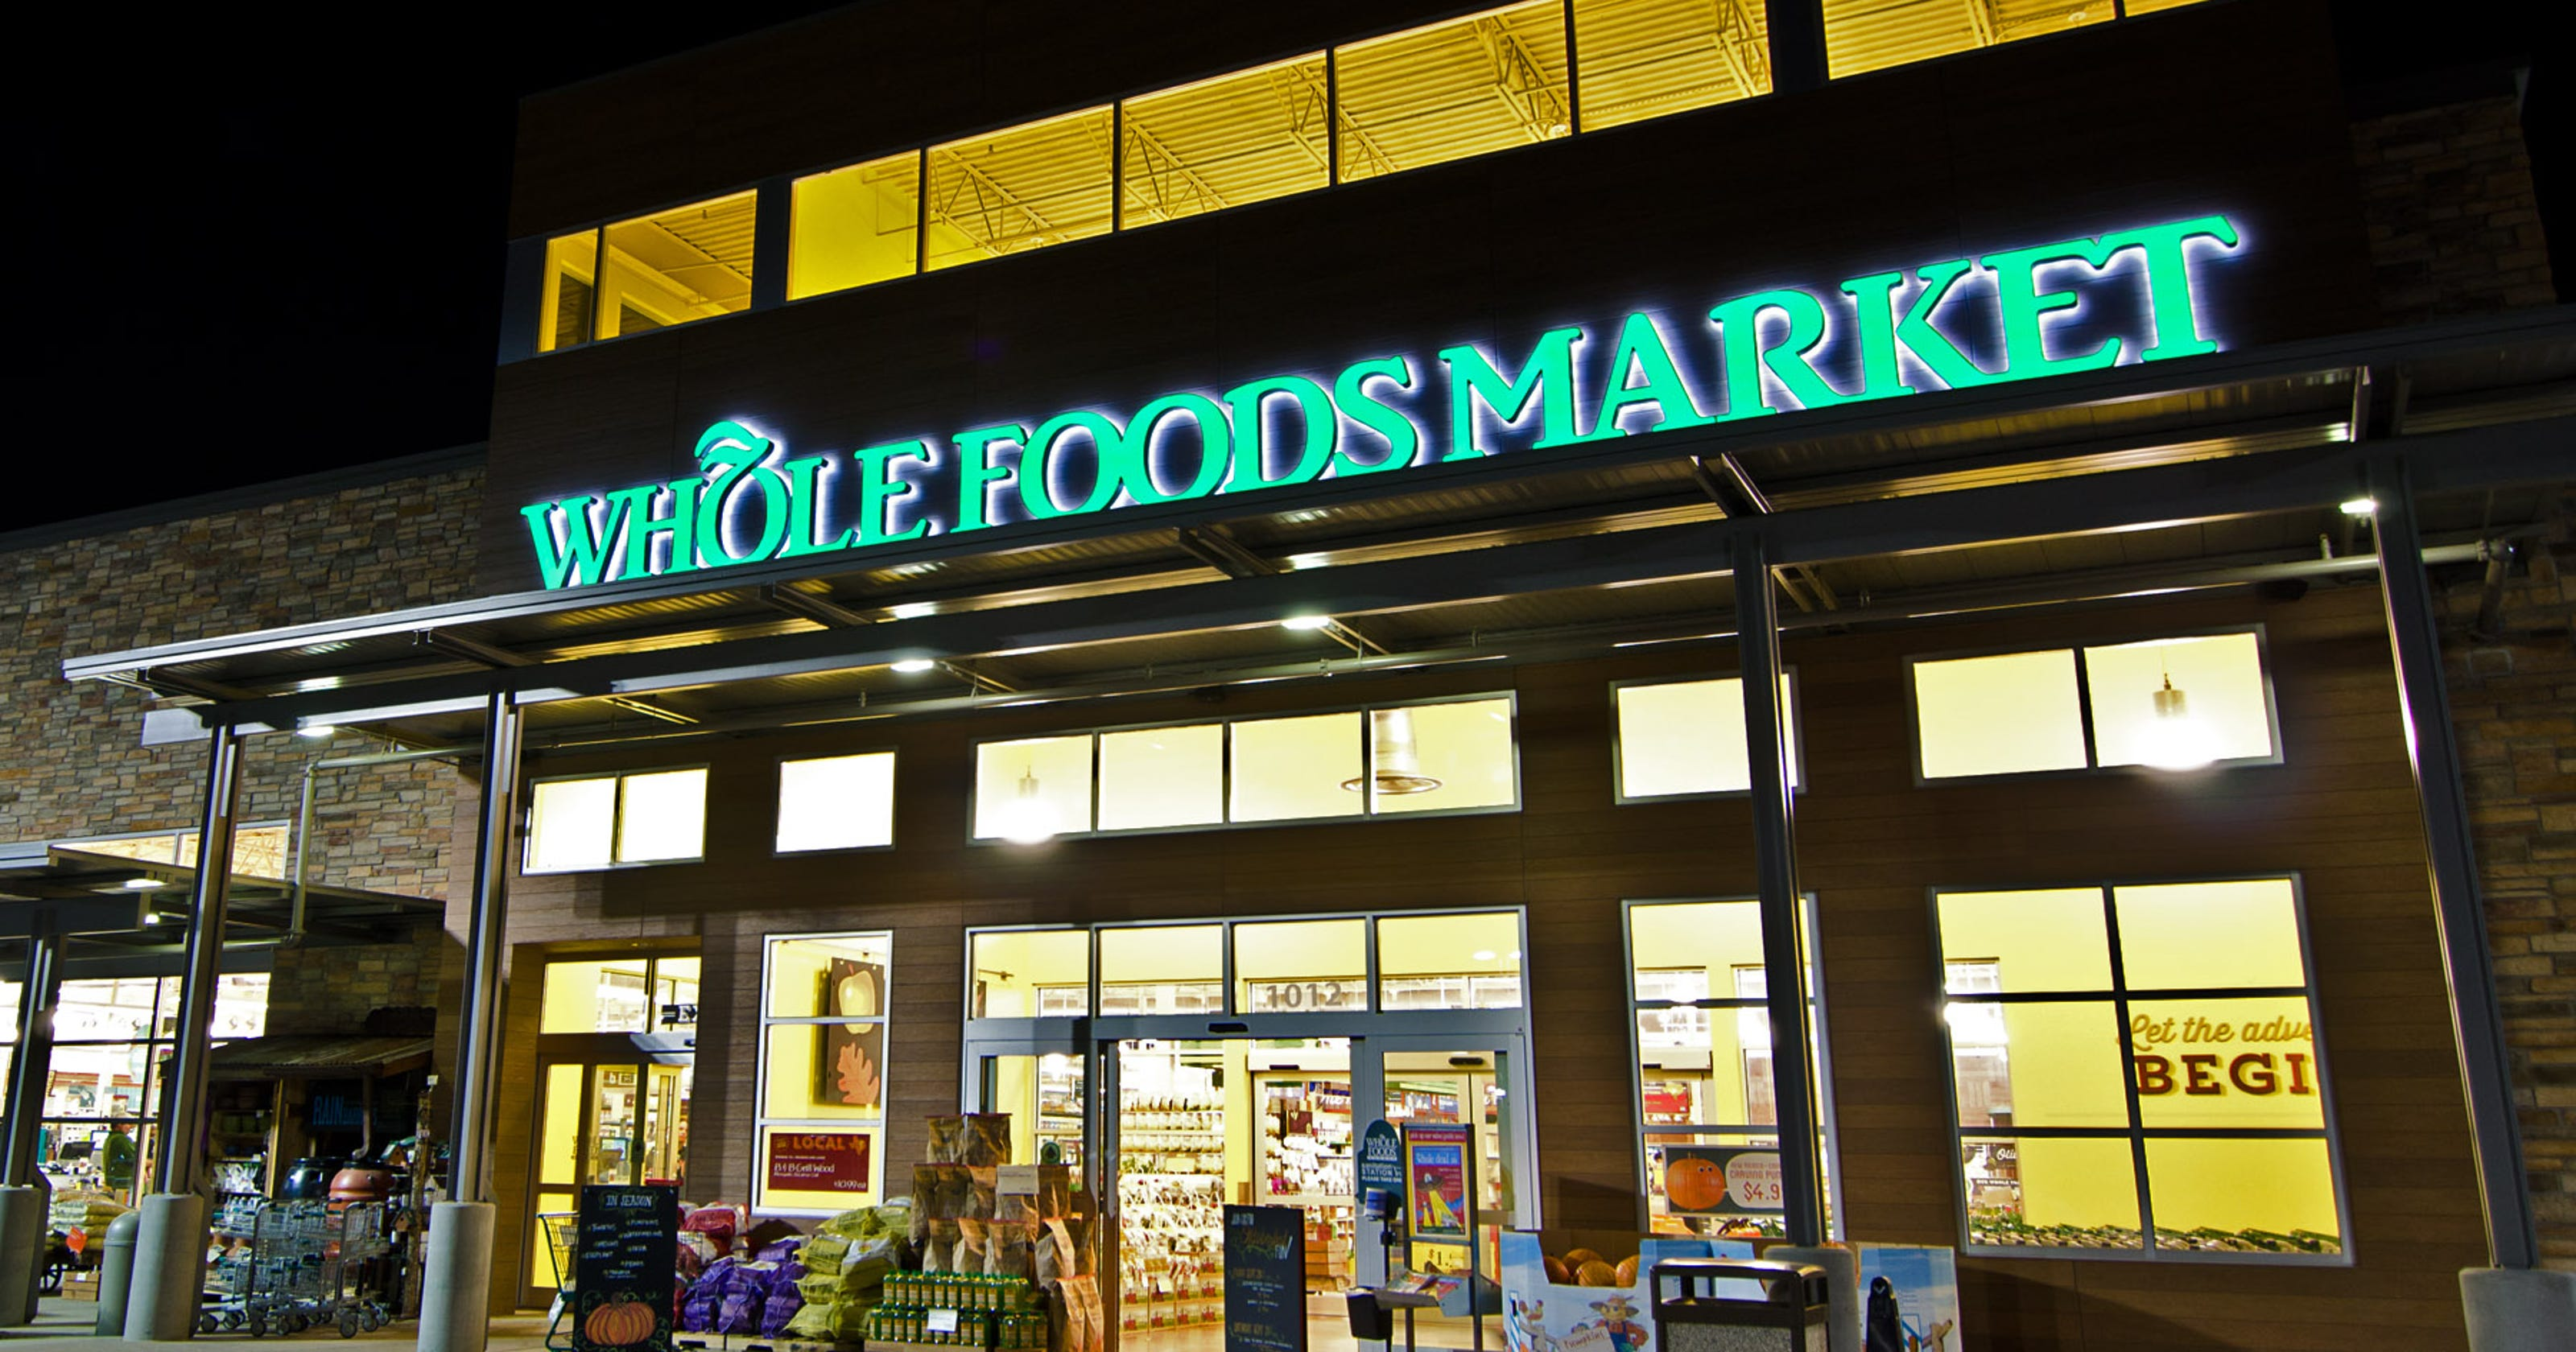 whole foods market in addison texas jpg?width=3200&height=1680&fit=crop